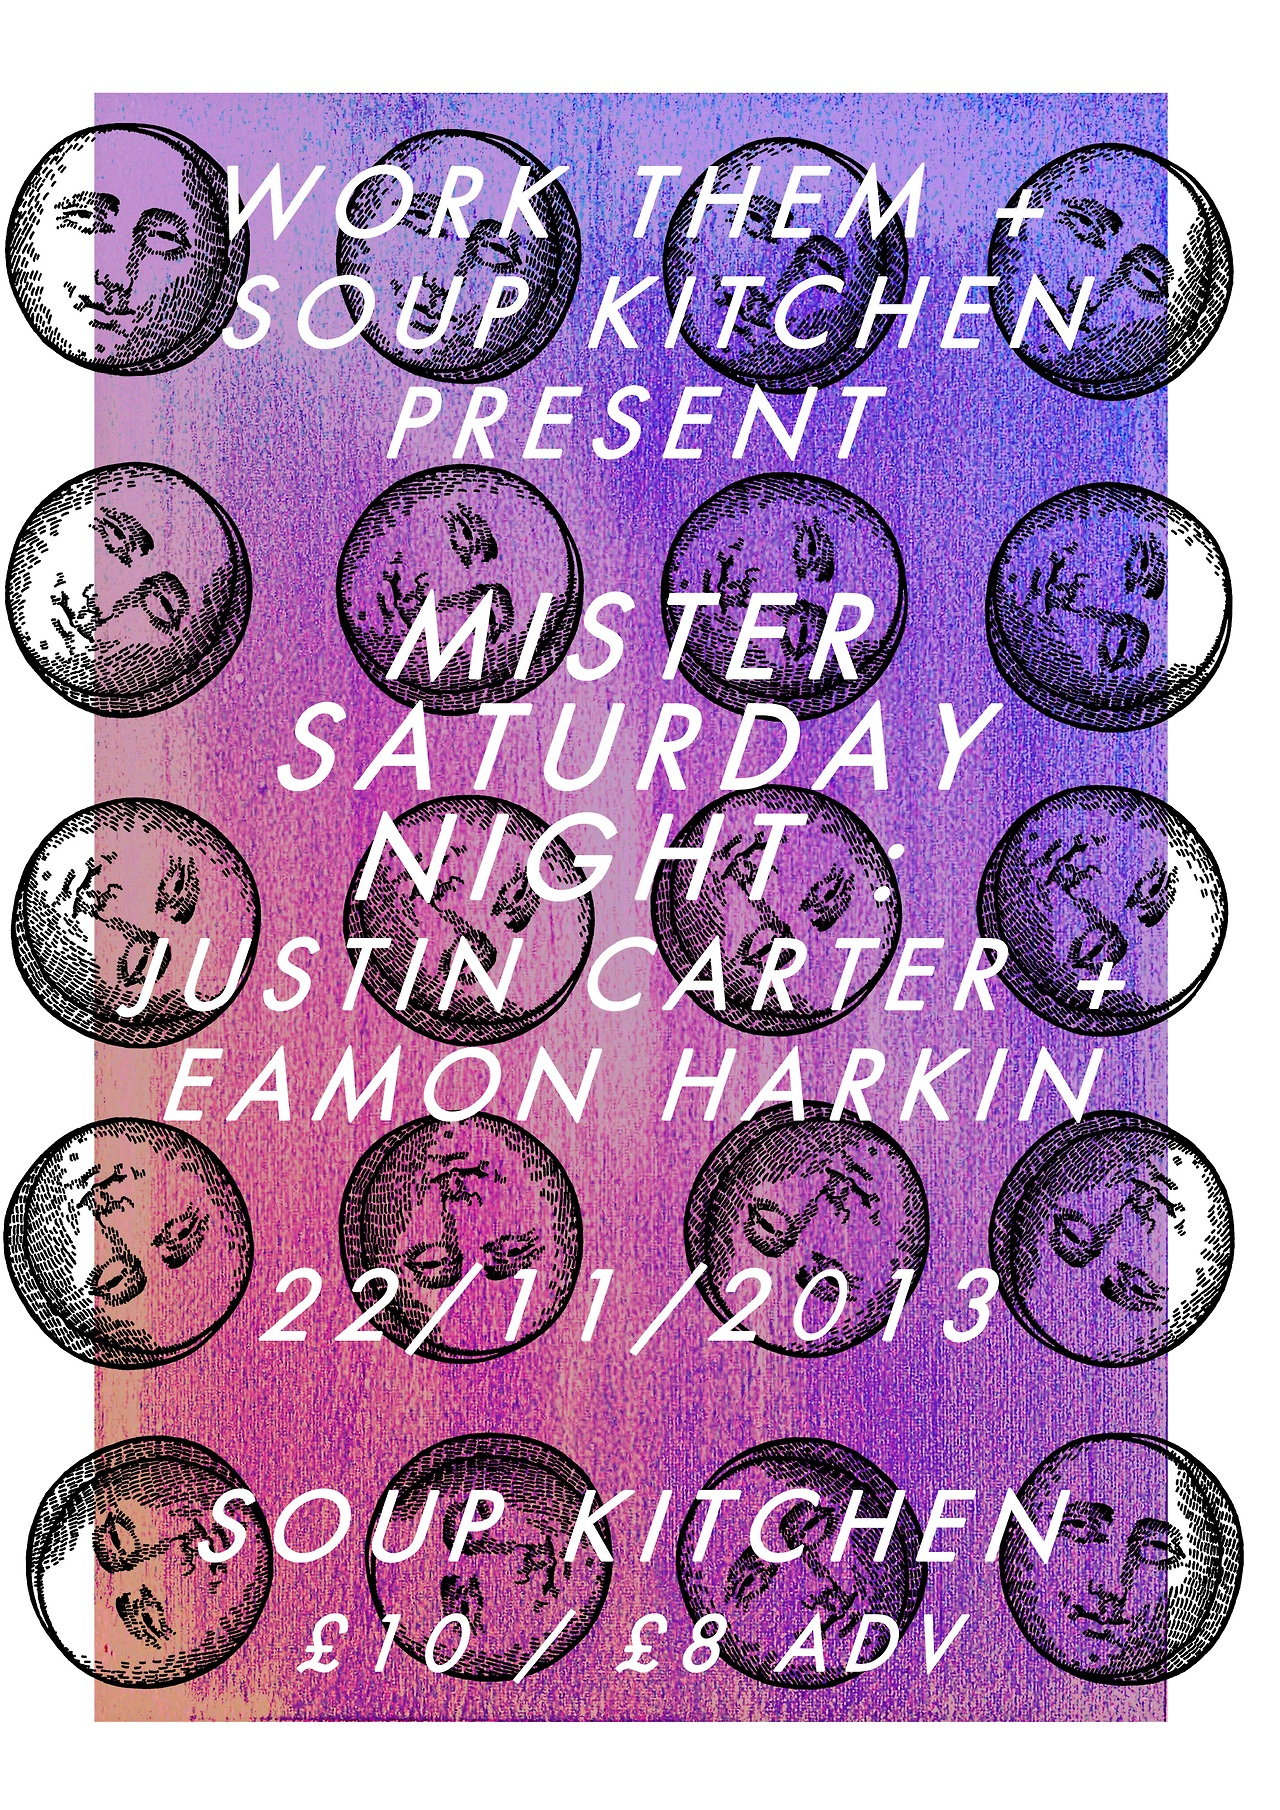 Mister Saturday Night Poster November 2013